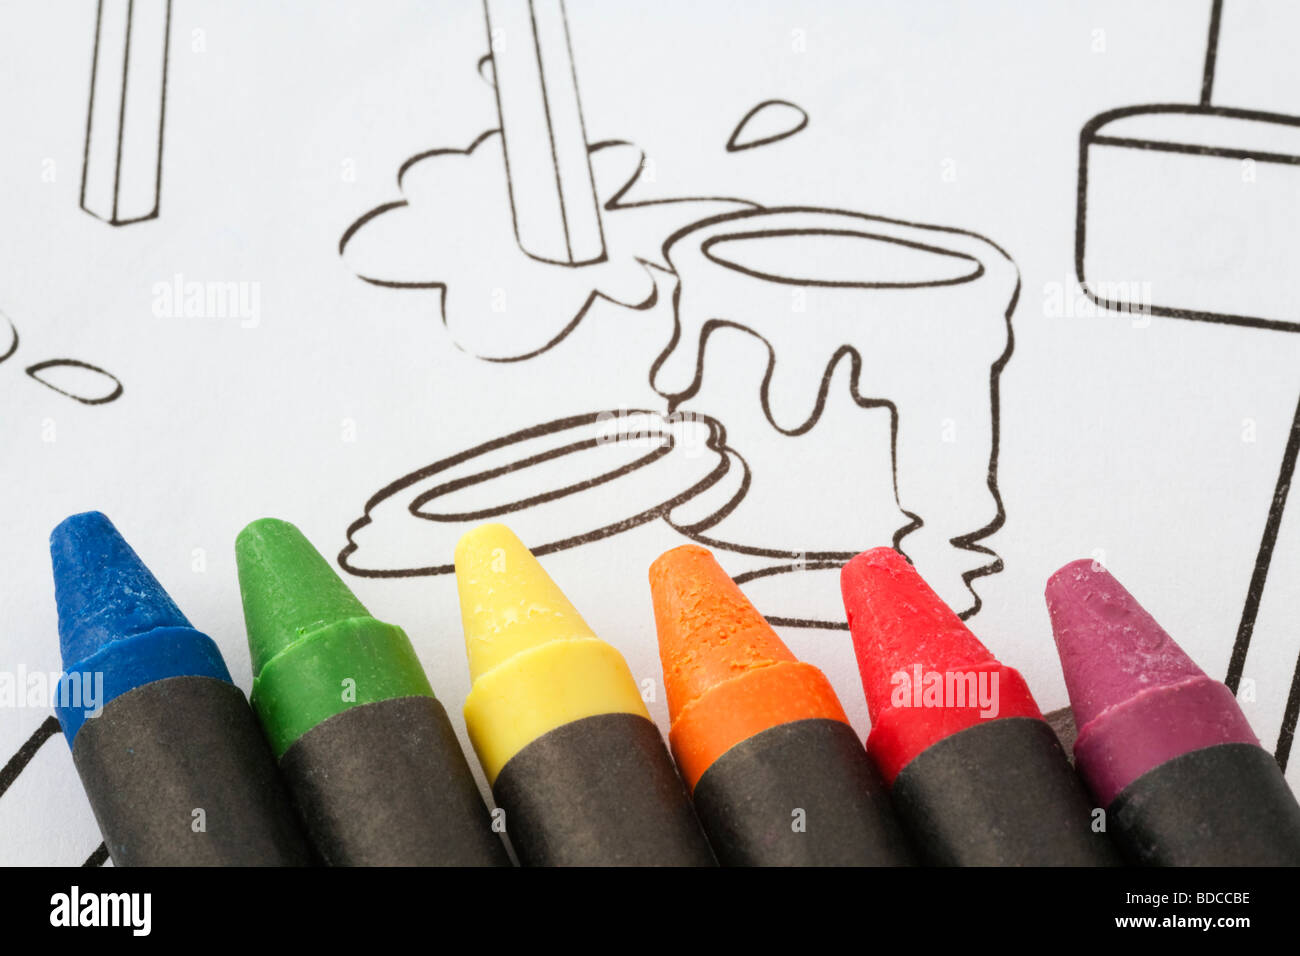 Wax coloured crayons on children's line drawing for colouring in a sketch pad - Stock Image